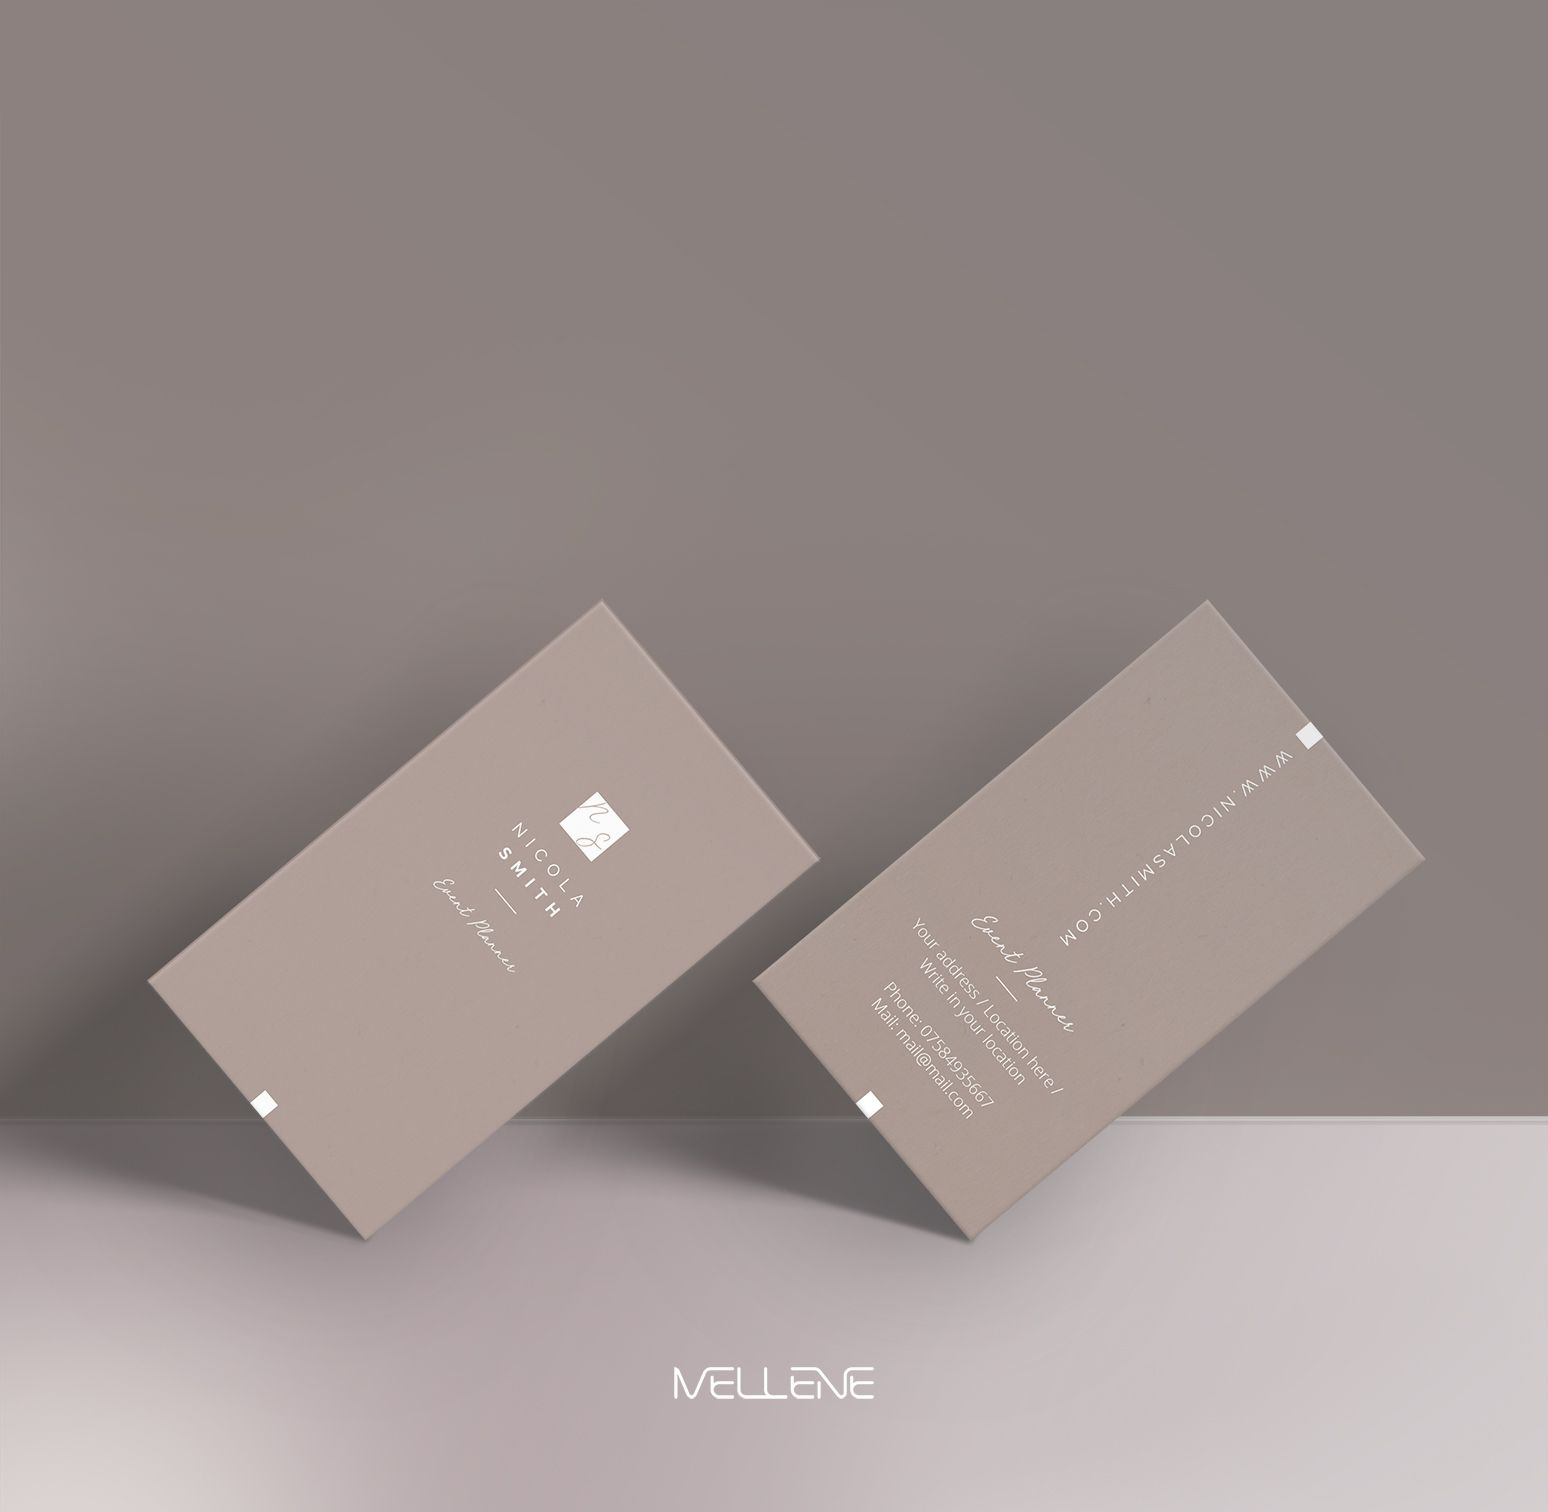 Business Card Template For Adobe Photoshop Psd File Etsy Business Cards Creative Templates Business Cards Creative Business Card Design Minimal Adobe photoshop business card template